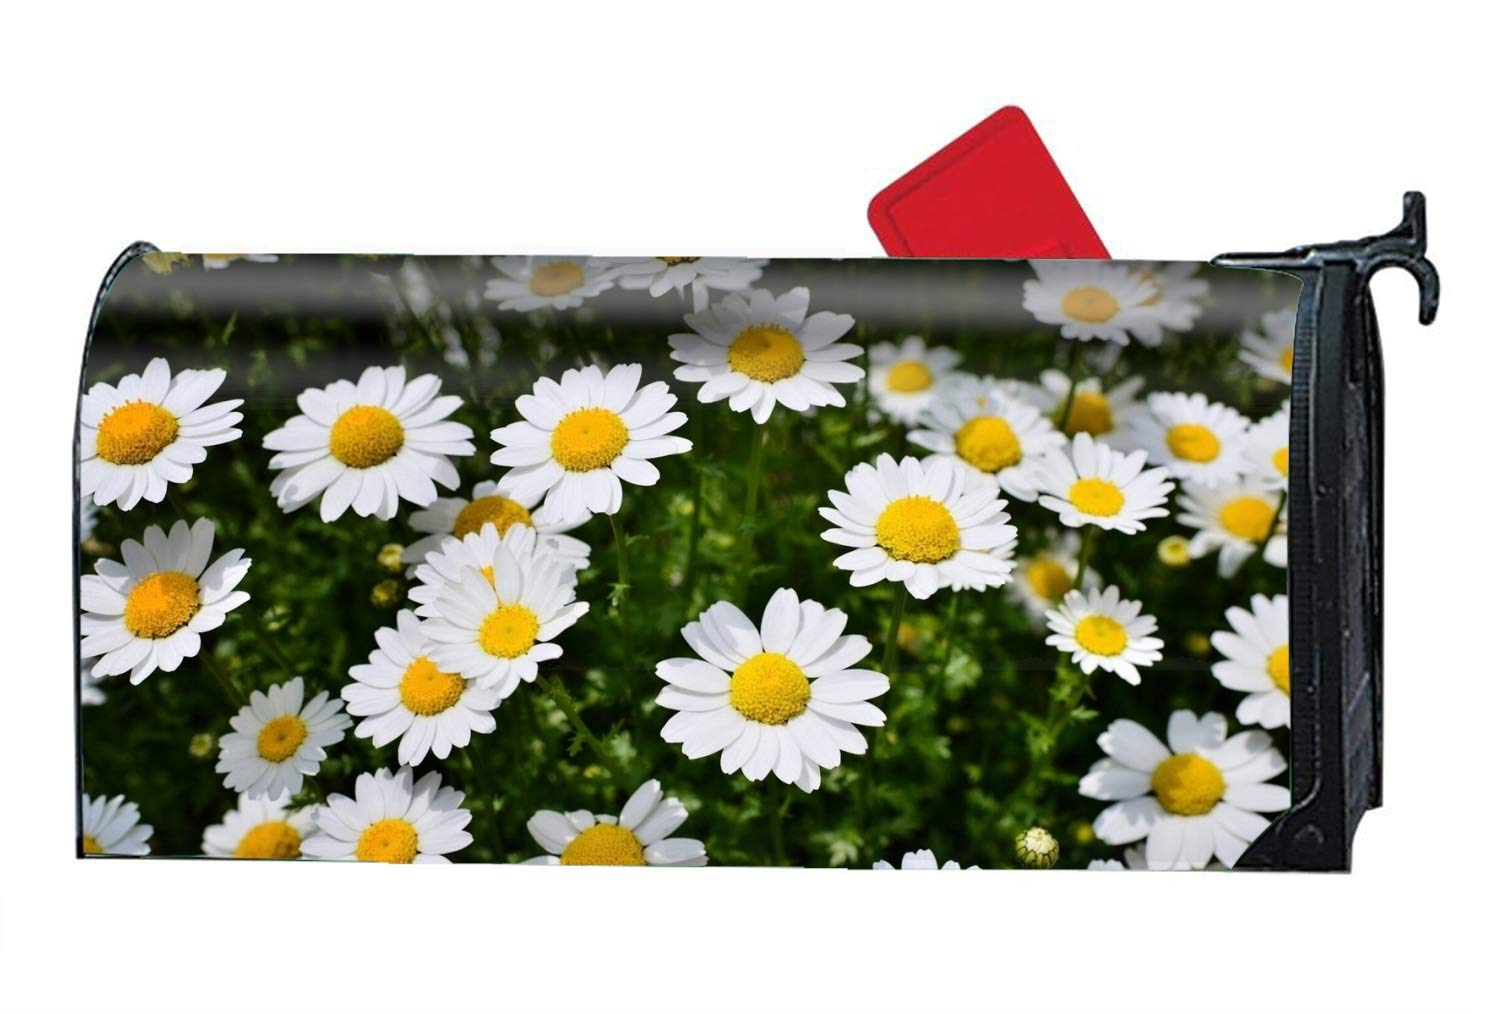 KSLIDS Earth Flowers Magnetic Mailbox Cover - Glowing Decorative Vintage Mailbox Wrap for Standard Size